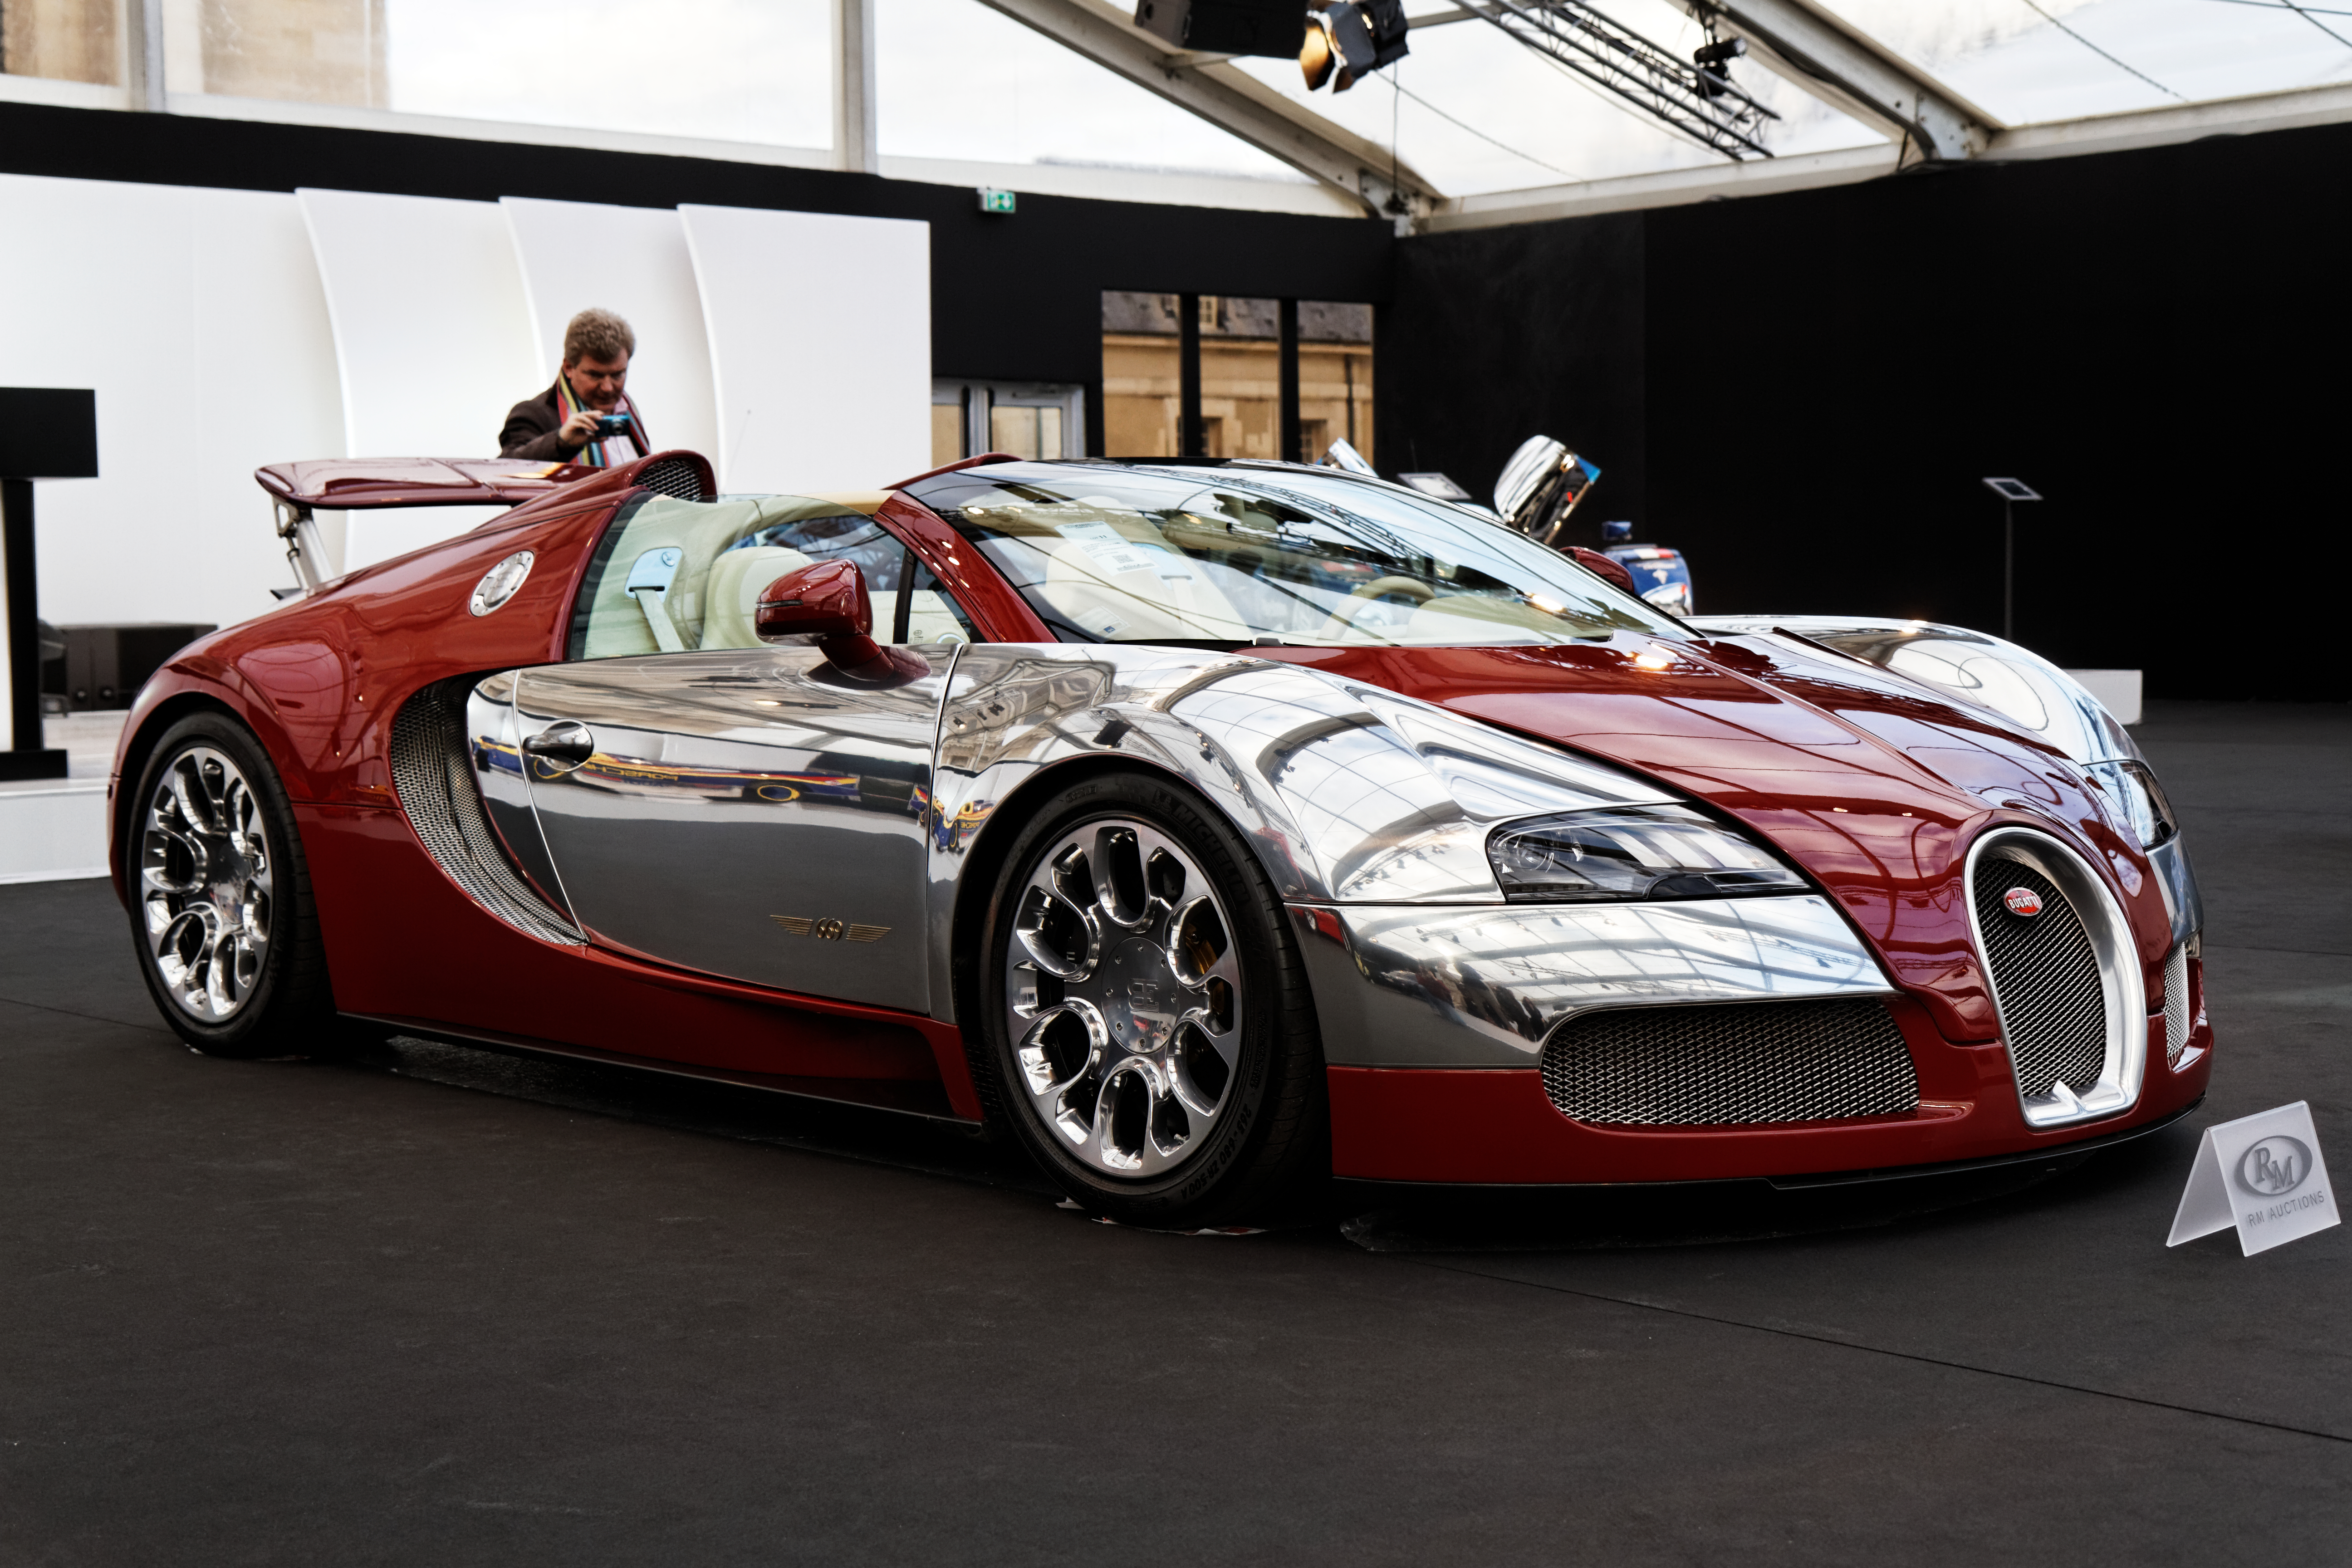 file paris rm auctions 5 f vrier 2014 bugatti veyron 16 4 grand sport. Black Bedroom Furniture Sets. Home Design Ideas